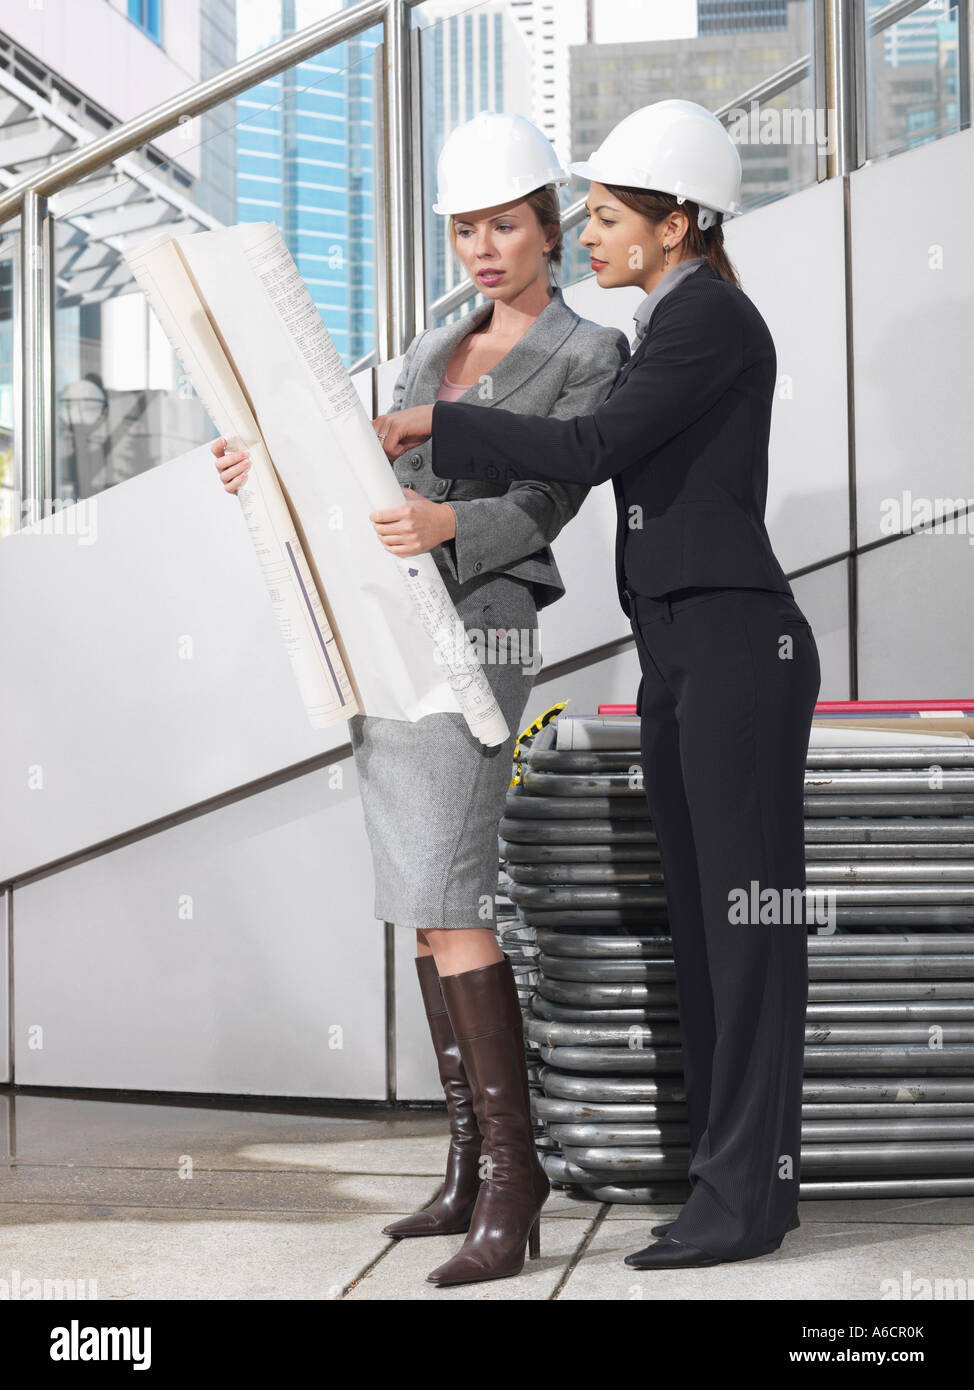 Businesswomen Looking at Plans Stock Photo